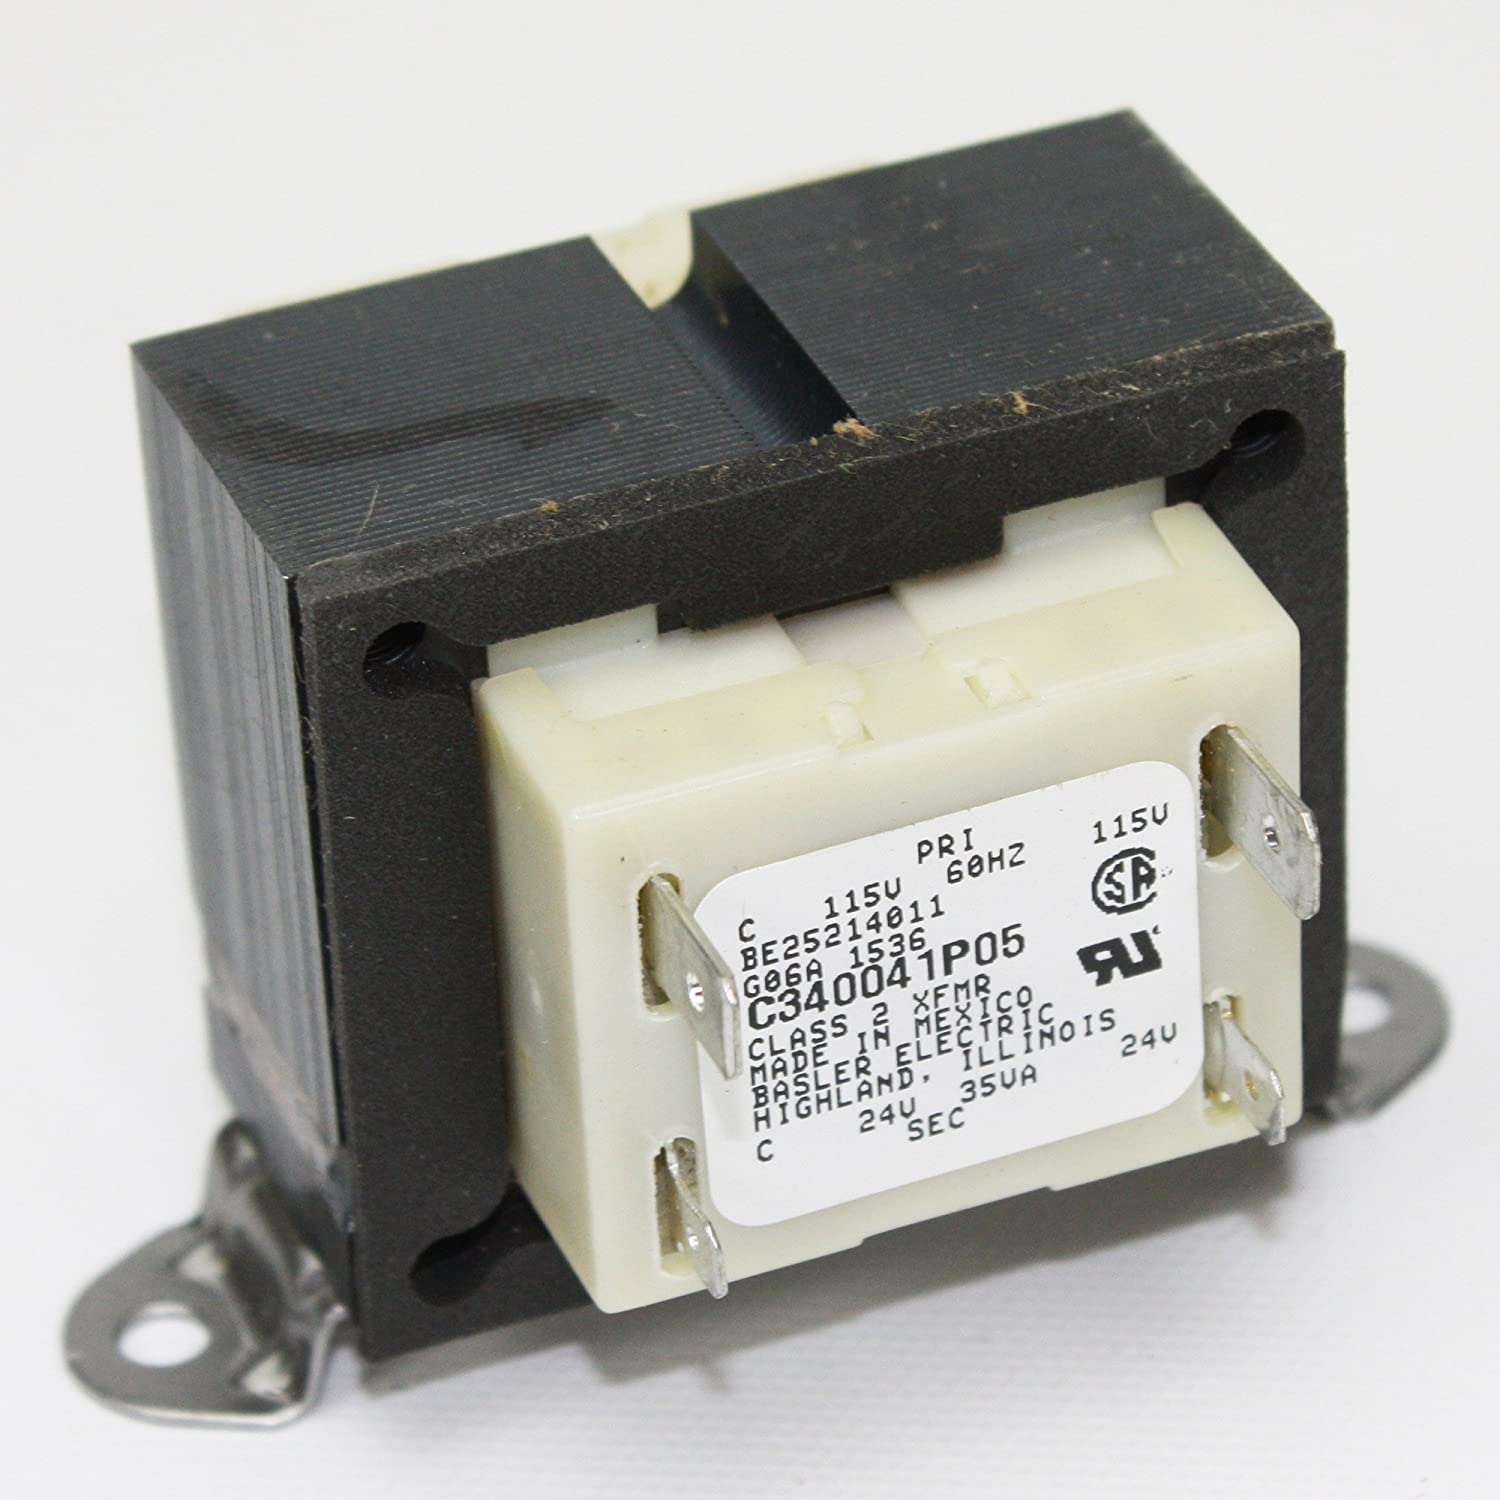 Trr01729 trane oem furnace replacement transformer hvac trr01729 trane oem furnace replacement transformer hvac controls amazon sciox Images